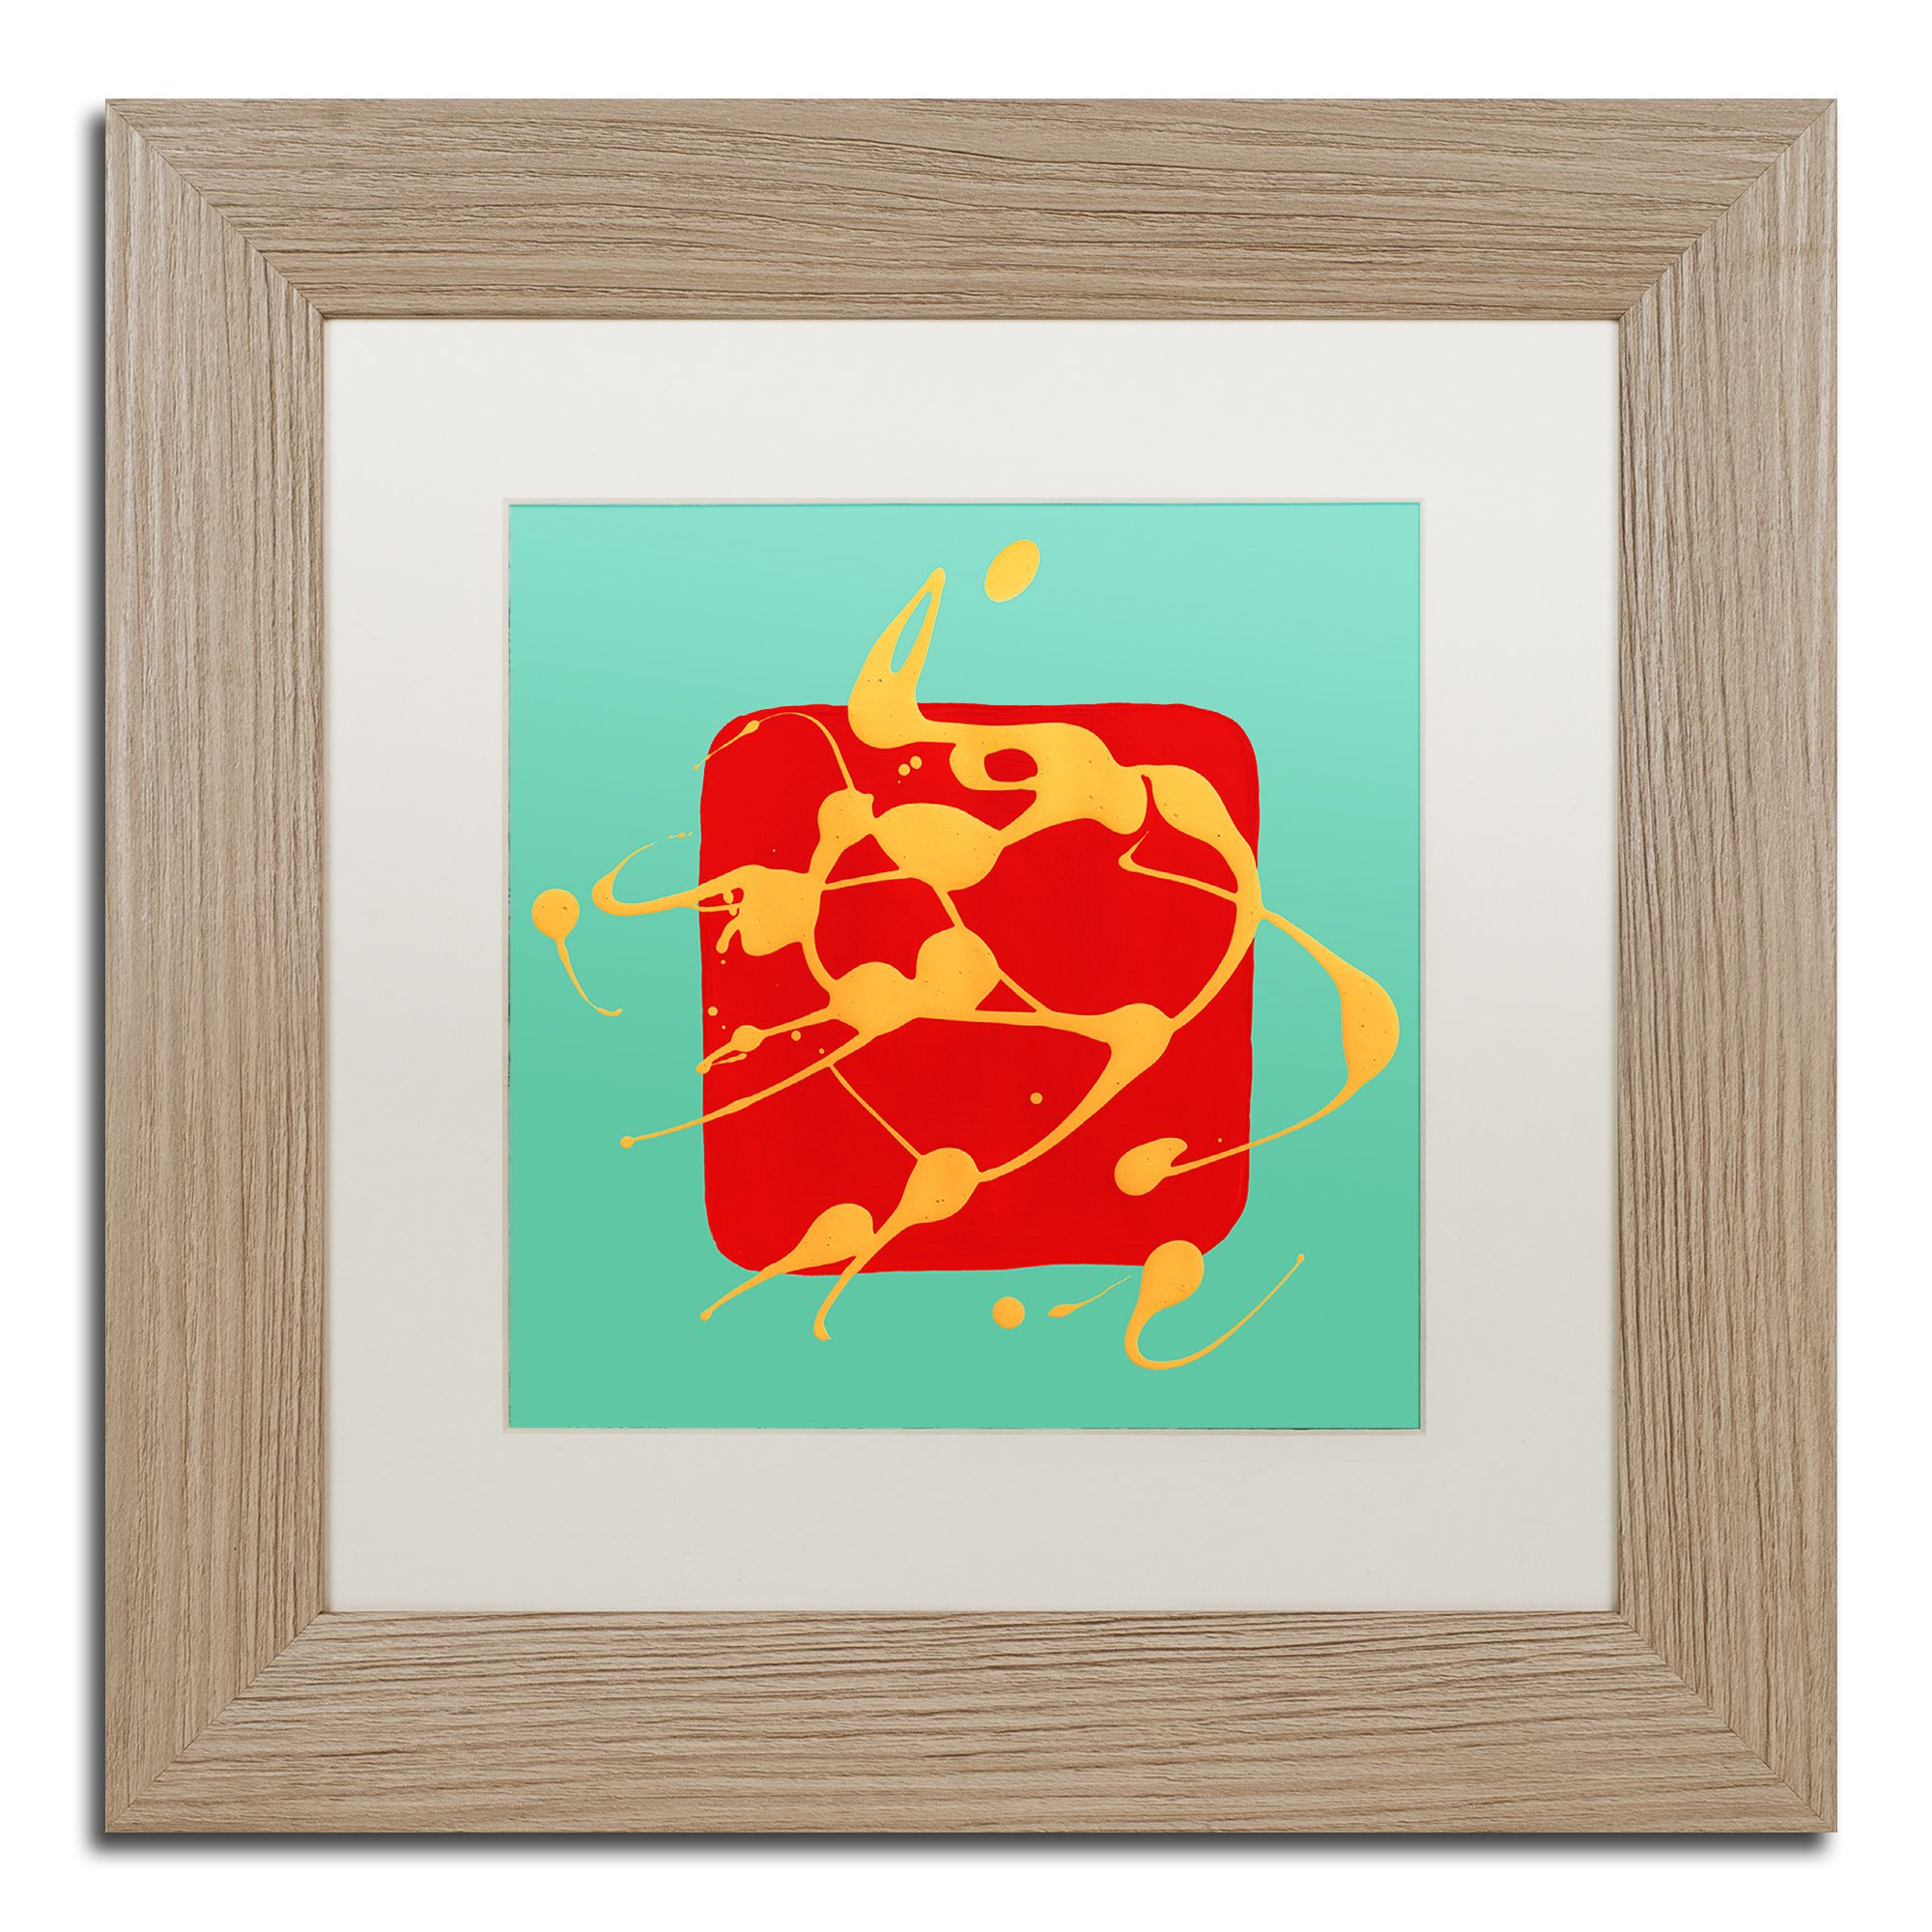 Amy Vangsgard \'Red Square Teal \' Matted Framed Art | Products ...